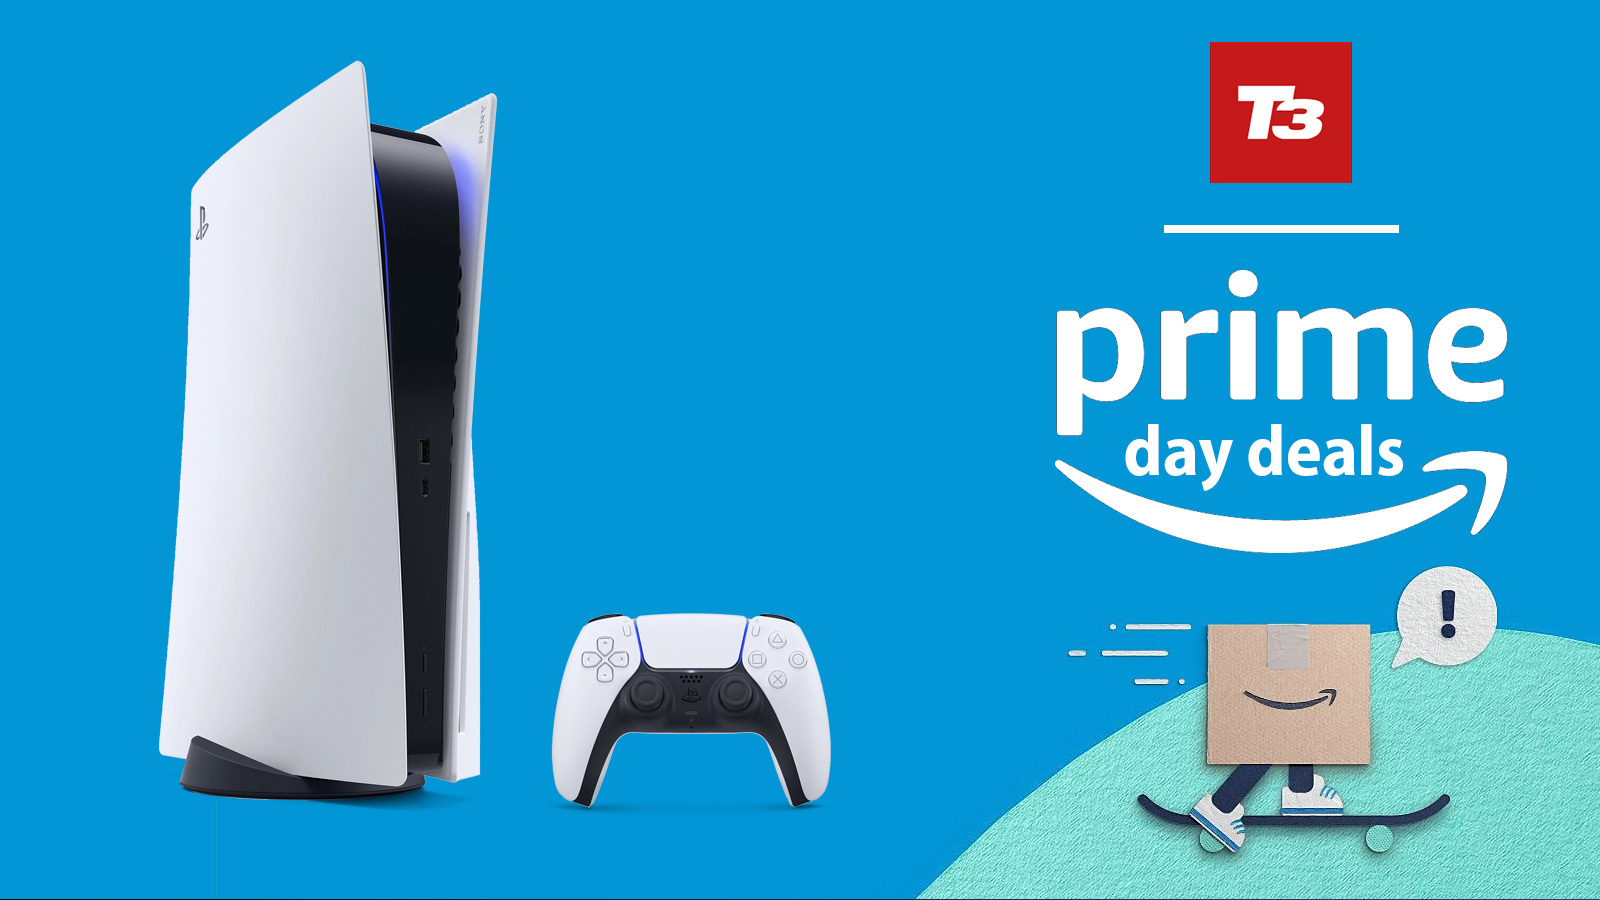 Best Amazon Prime Day Ps5 Deals Consoles Tvs Games And Accessories T3